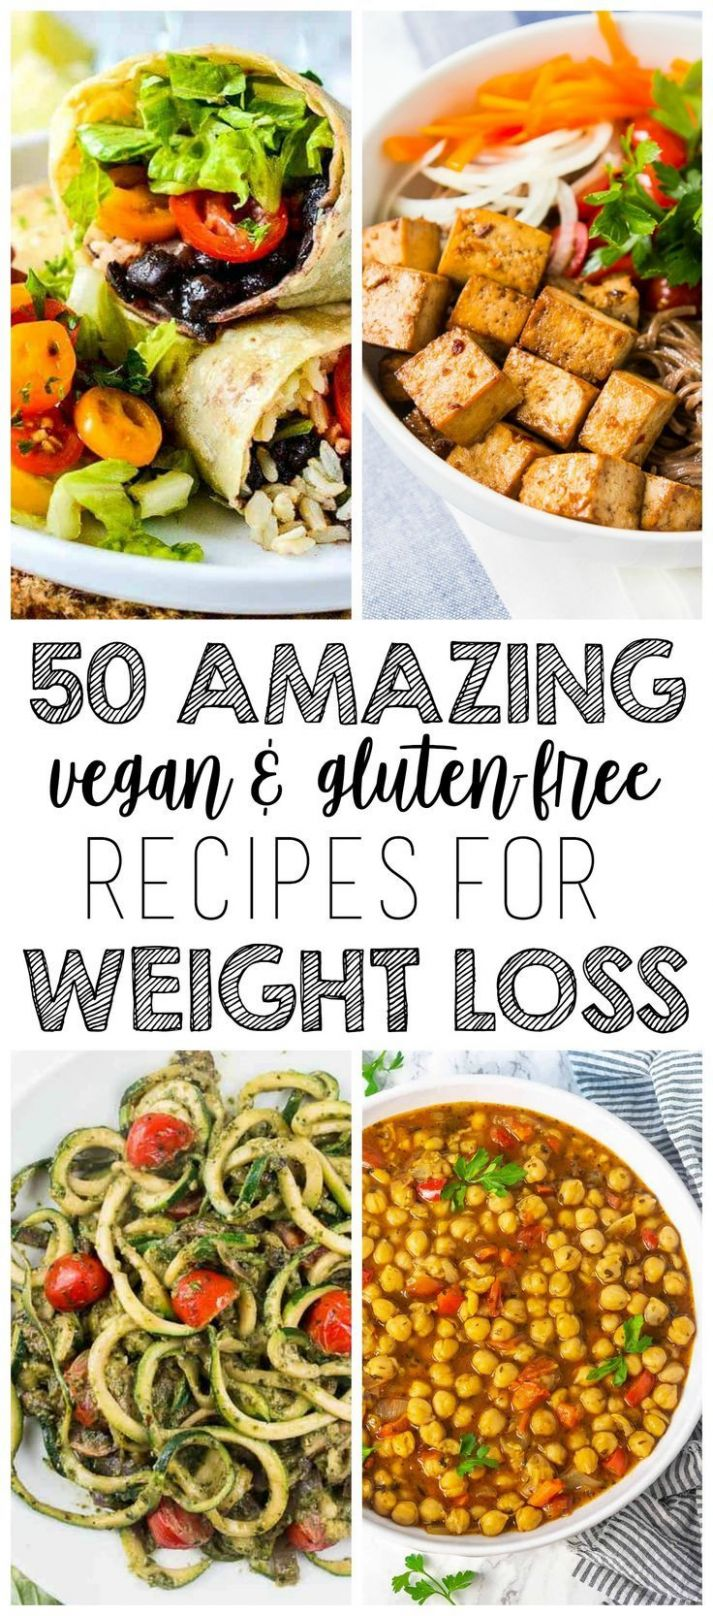 Pin on All Things Vegan - Weight Loss Lunch Recipes Vegetarian